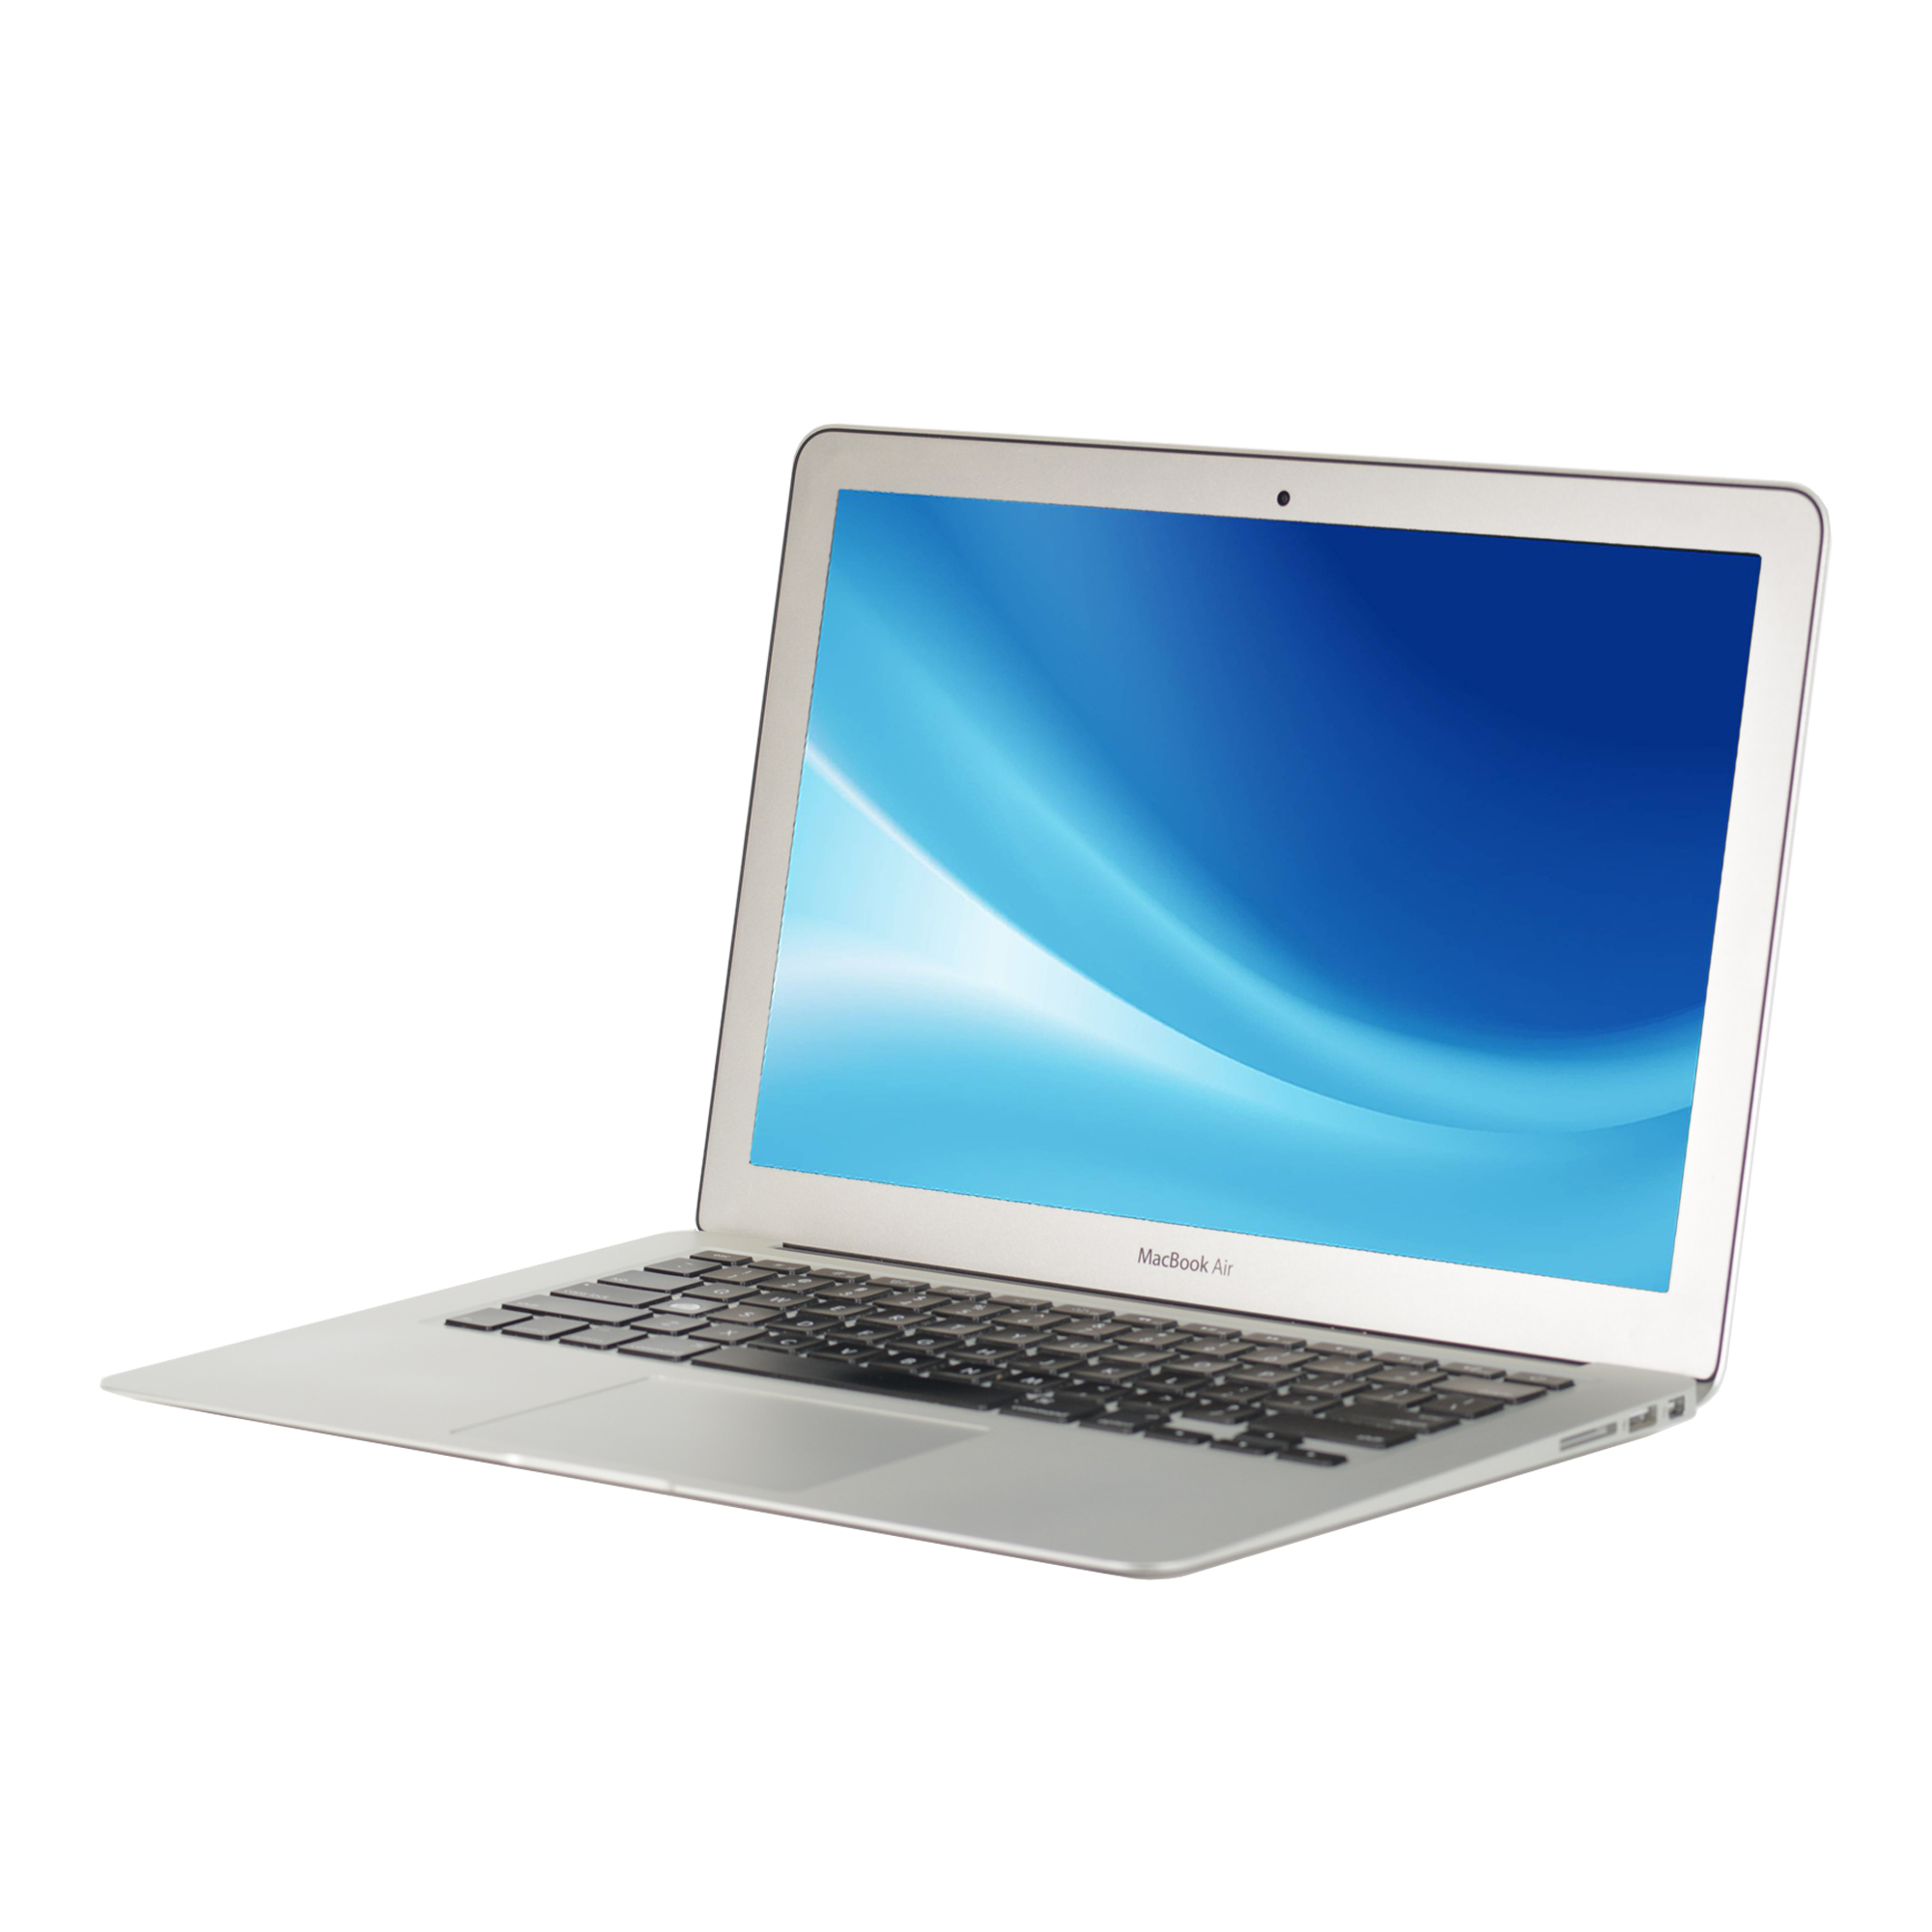 Find great deals on eBay for Refurbished MacBook in Apple Laptops. Shop with confidence.